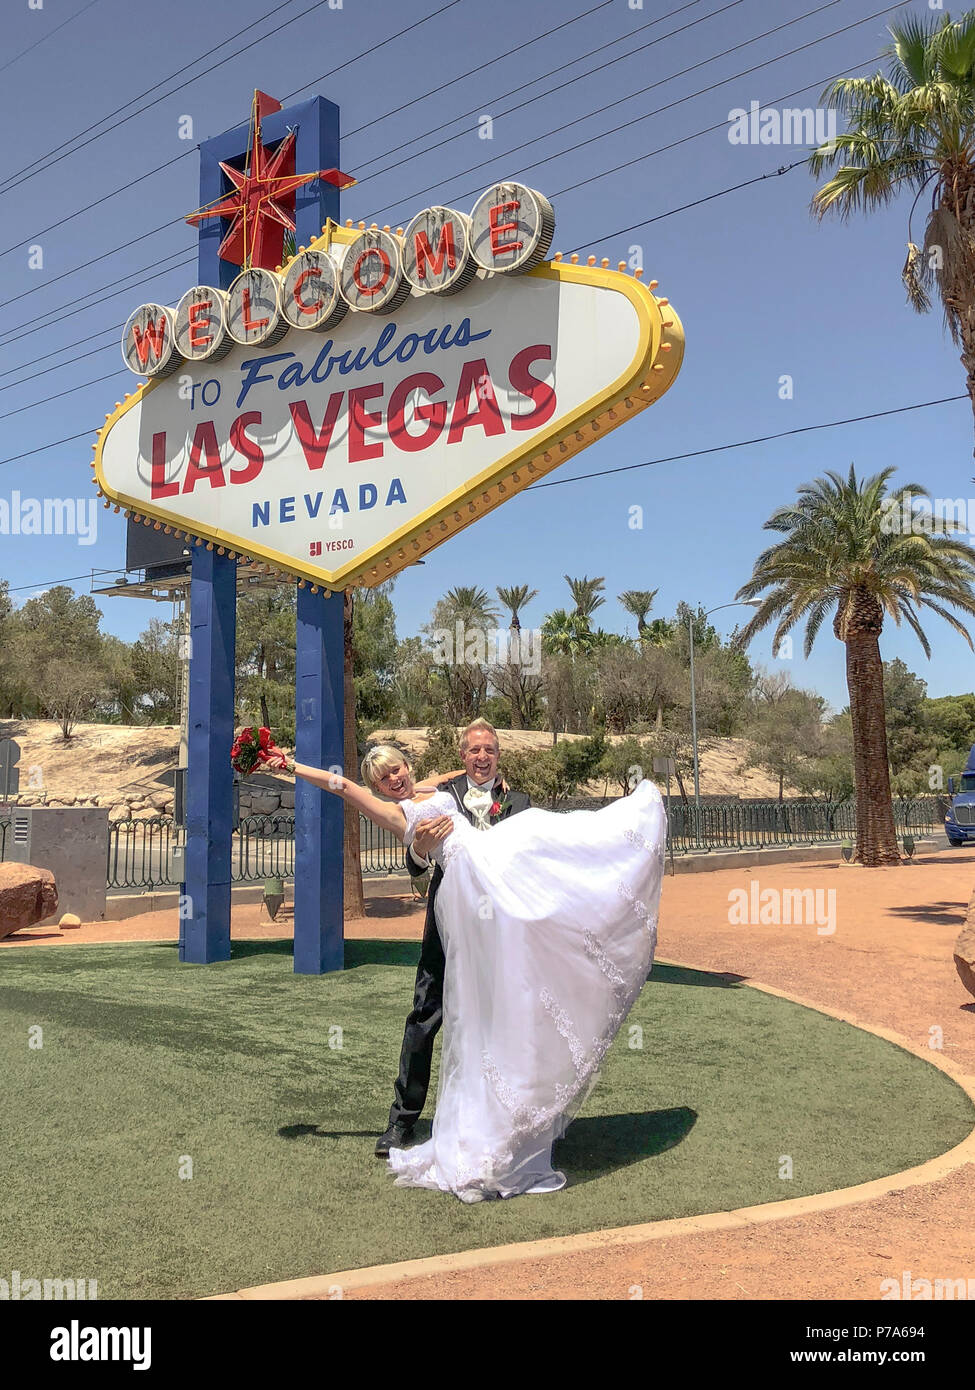 Bride and groom at Welcome to Fabulous Las Vegas sign. Newlywed couple pose for photo, the bridegroom lifting up the bride with bouquet in his arms - Stock Image